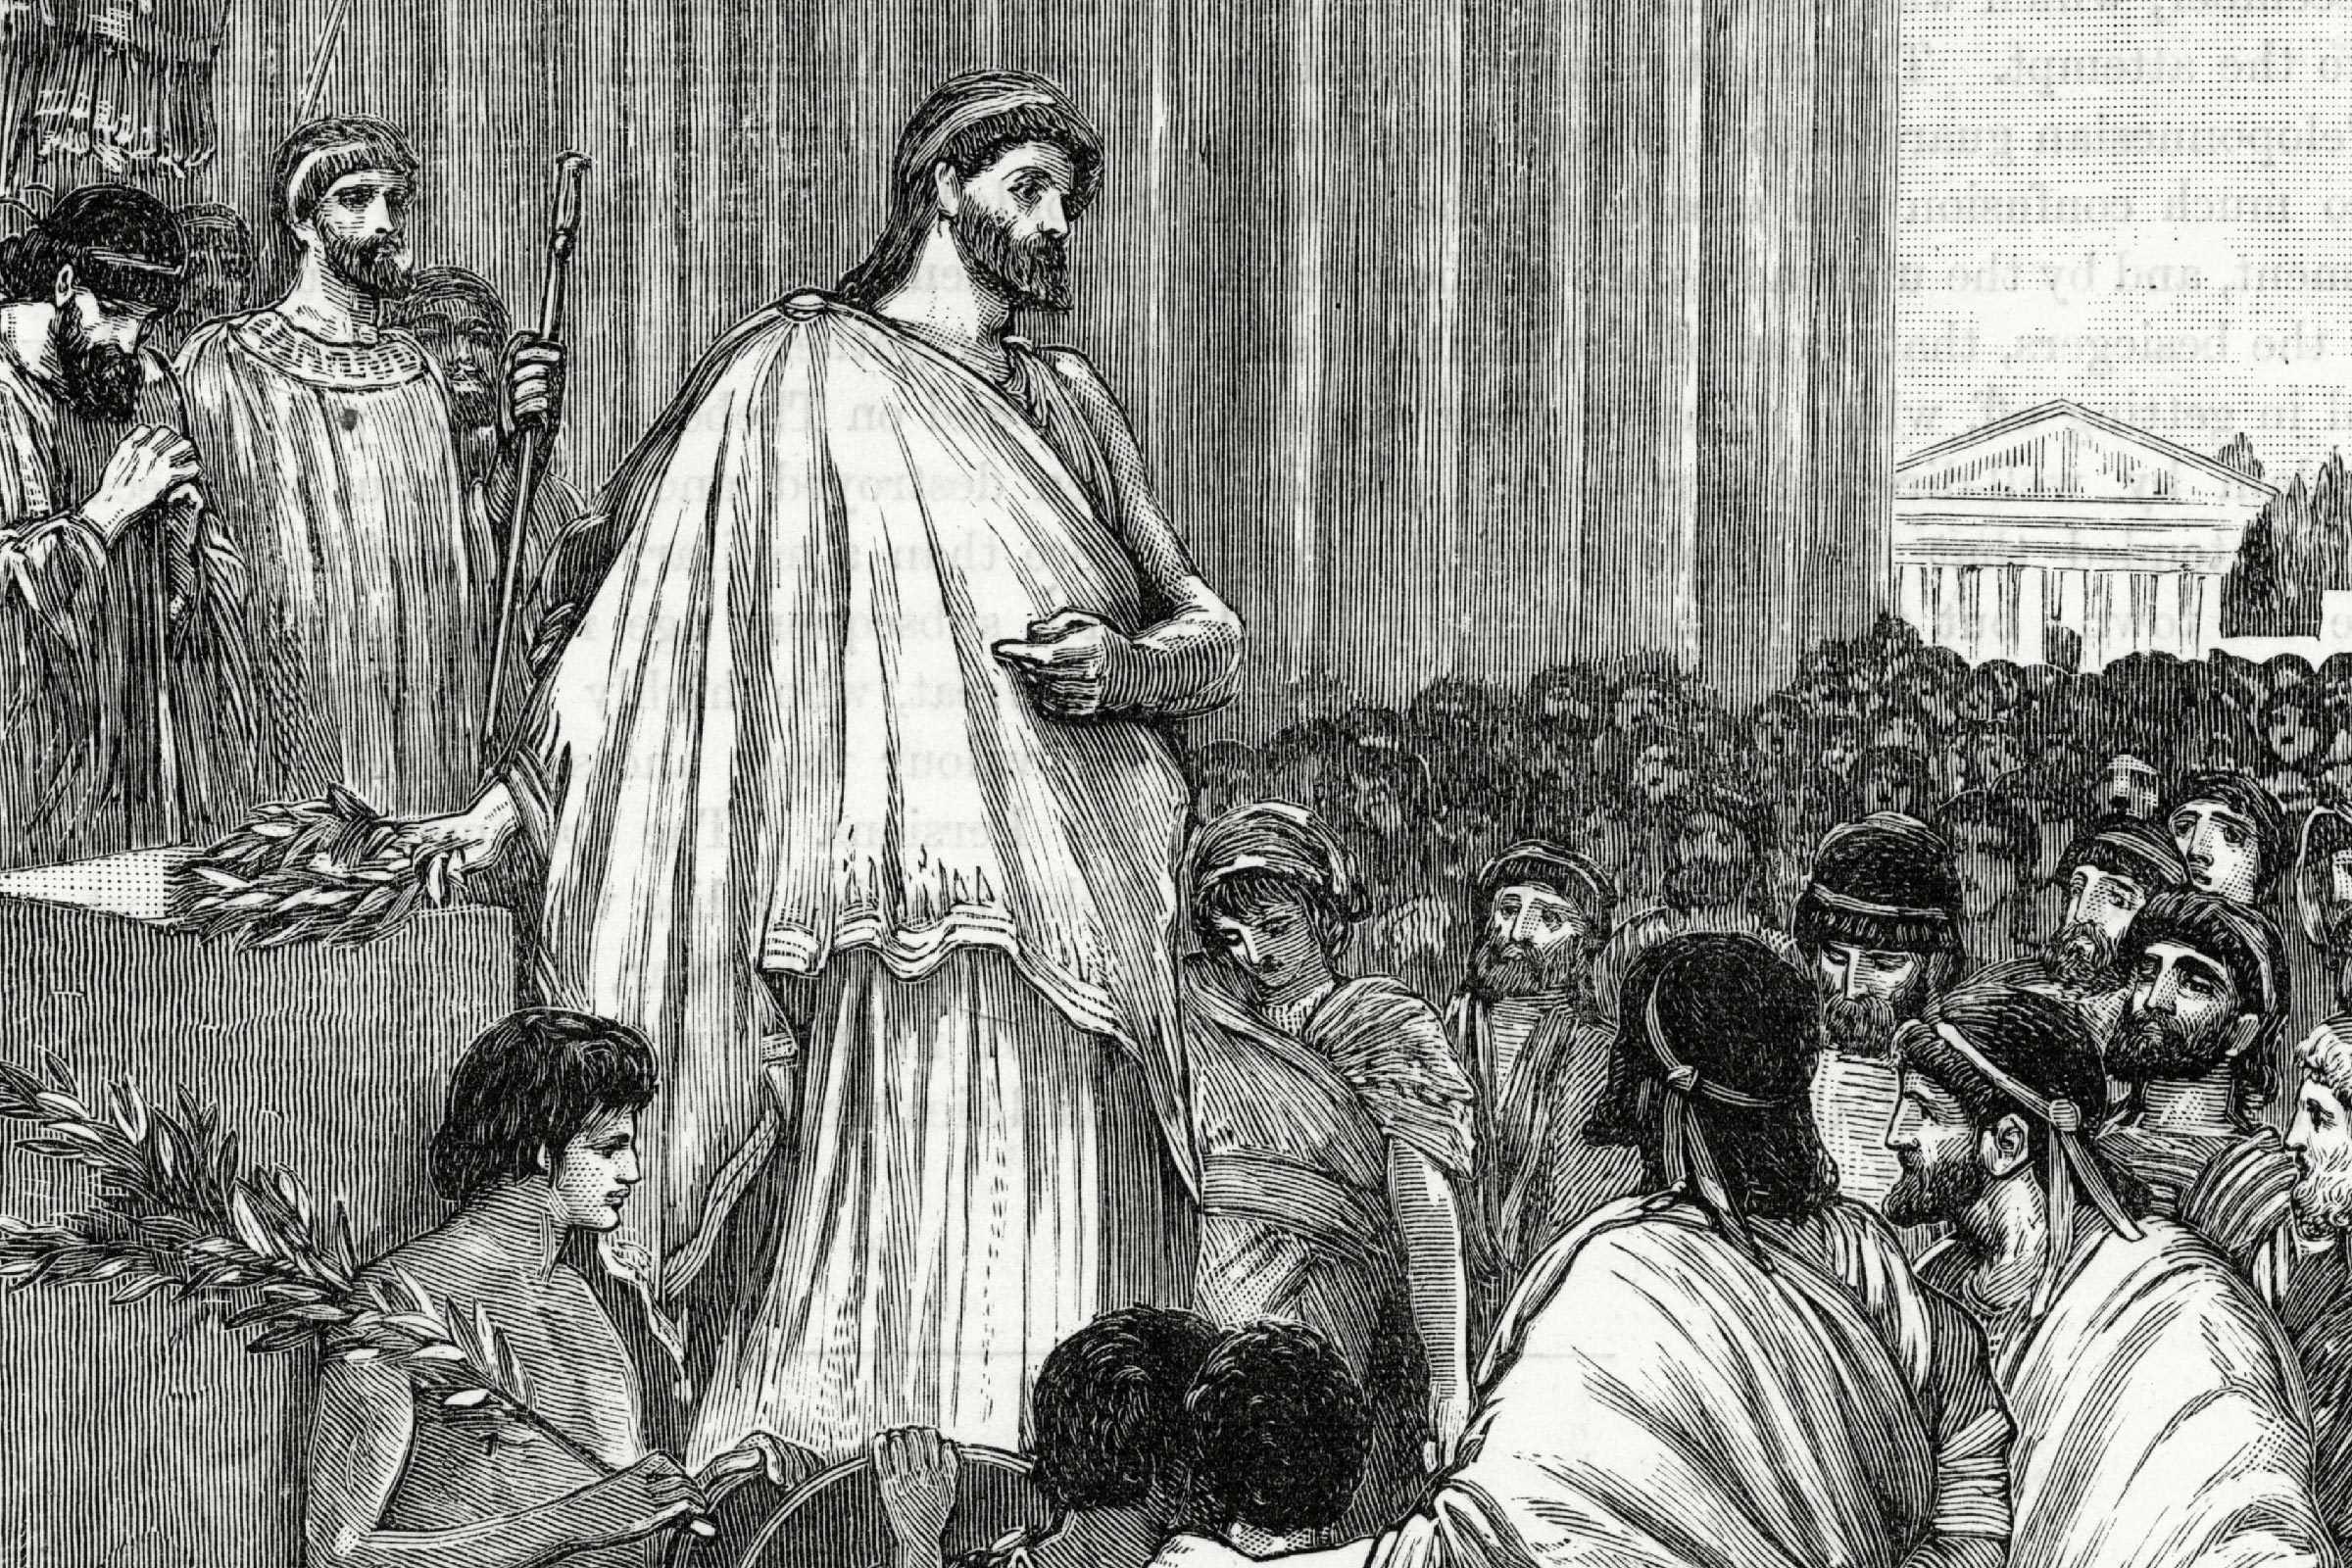 Pericles Delivers A Funeral Oration Over the Bodies of Soldiers Who Have Given Their Lives For Athens 430 BCE